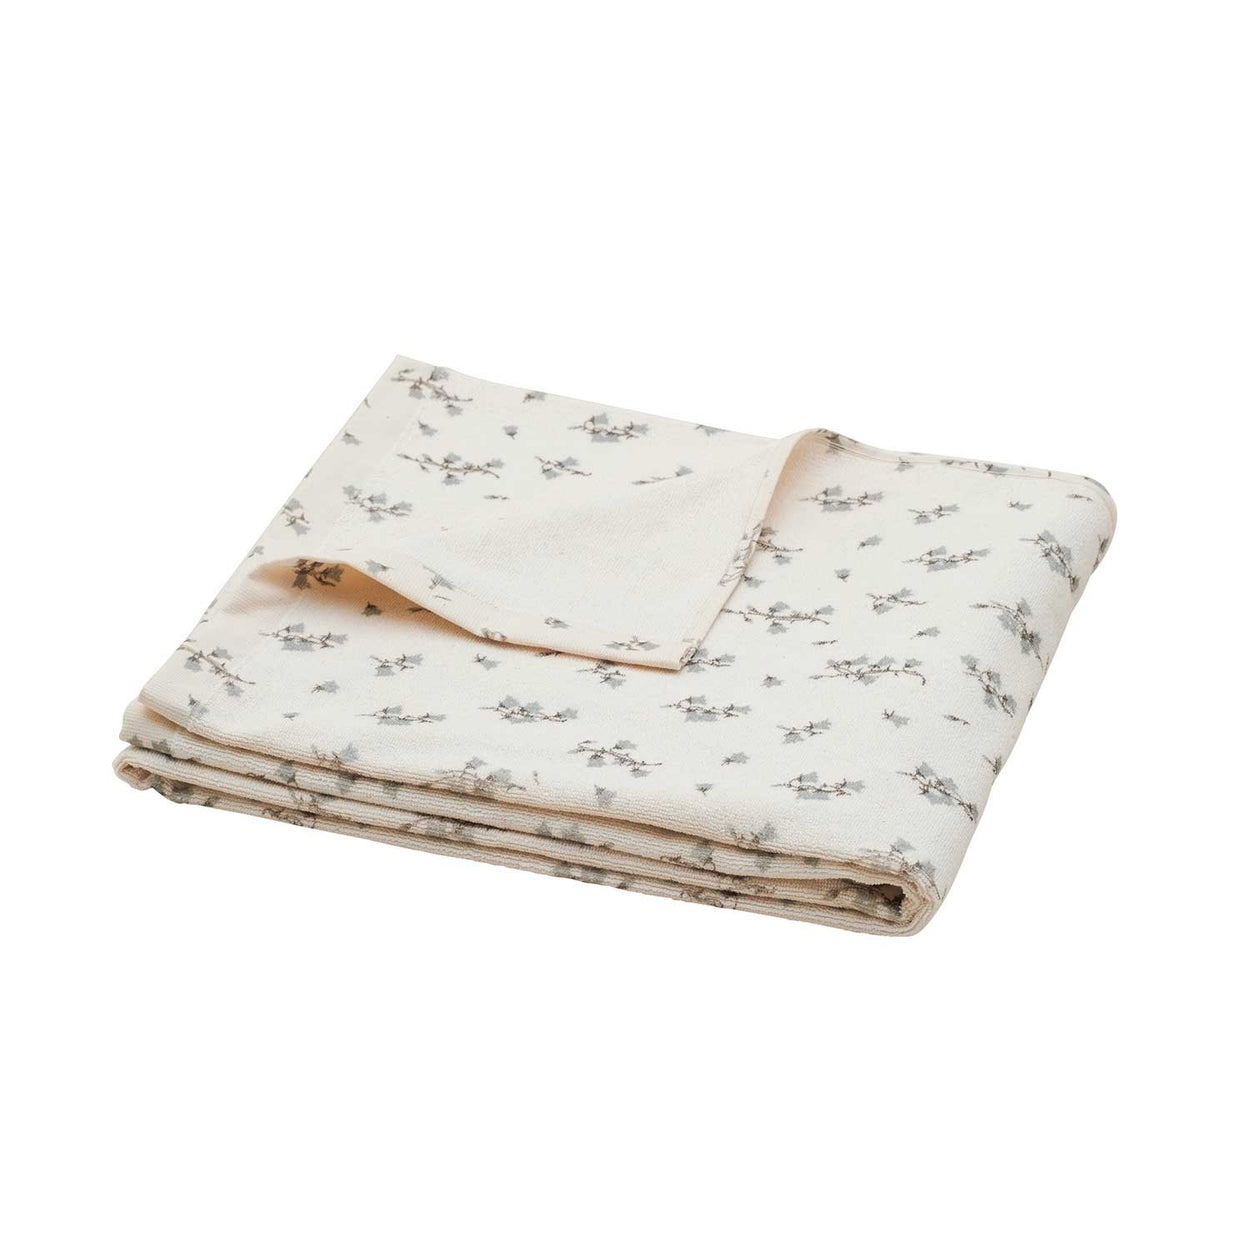 Garbo&Friends gender-neutral floral pattern towel